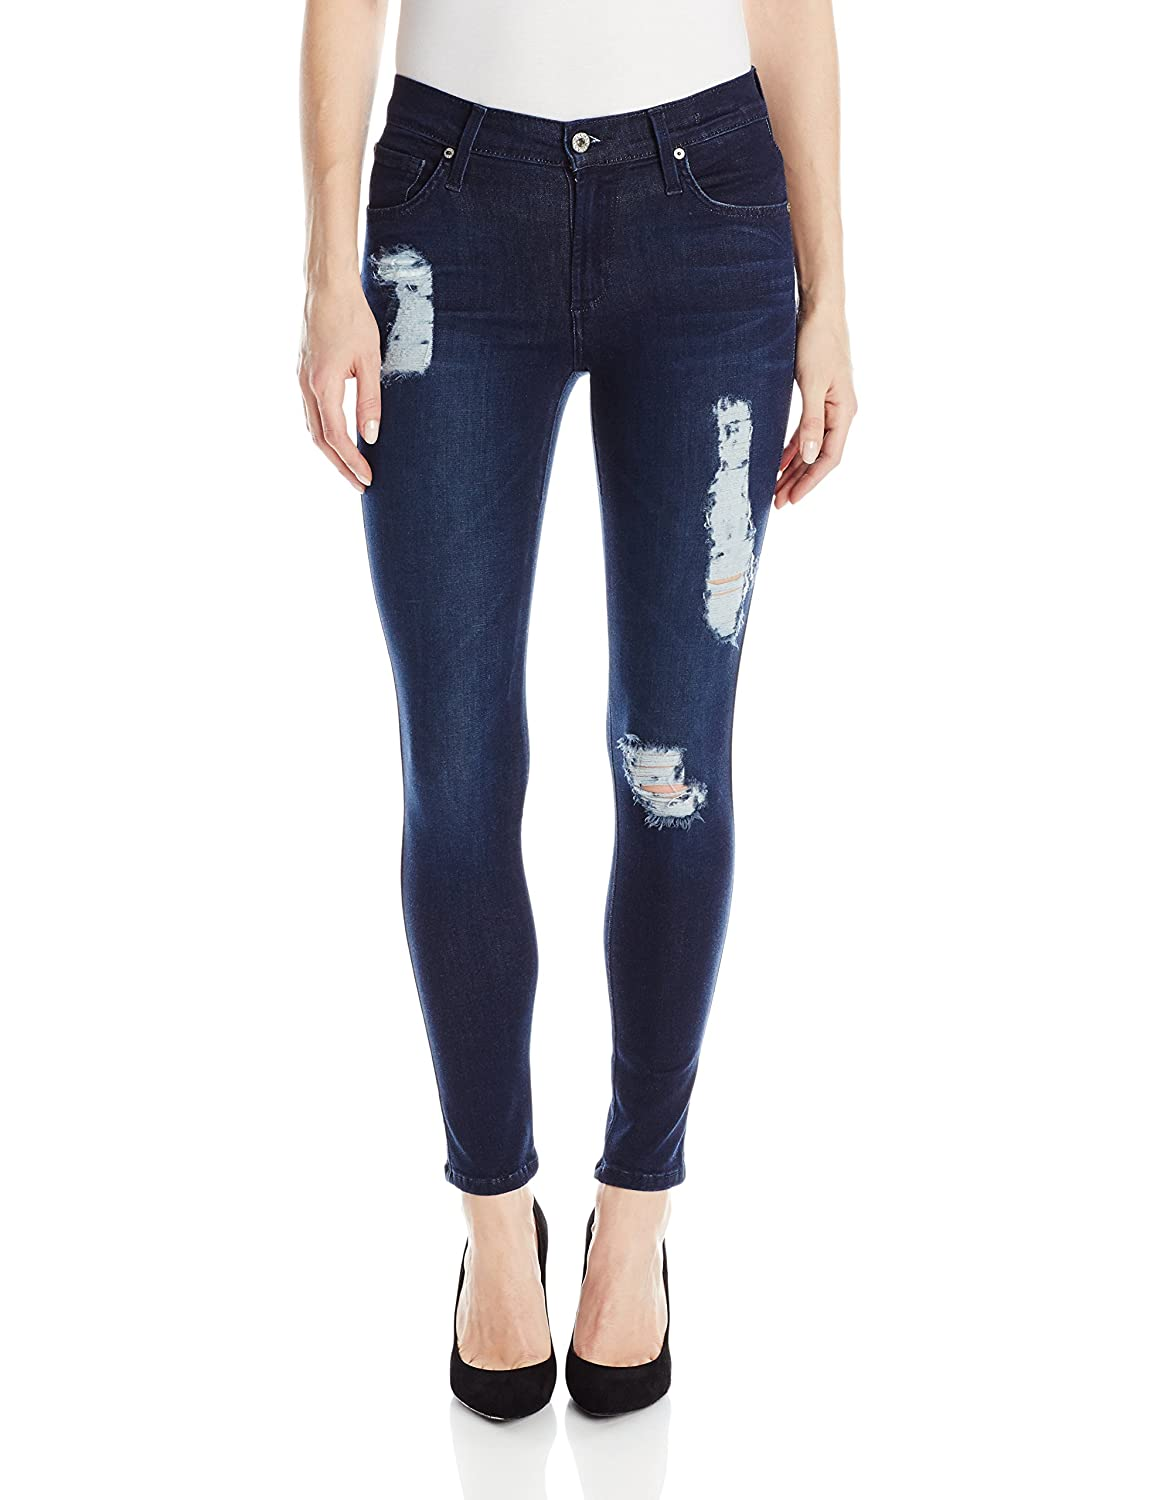 Dark Pyro James Jeans Women's Twiggy Ankle 5Pocket Legging Jean in Dark Pyro